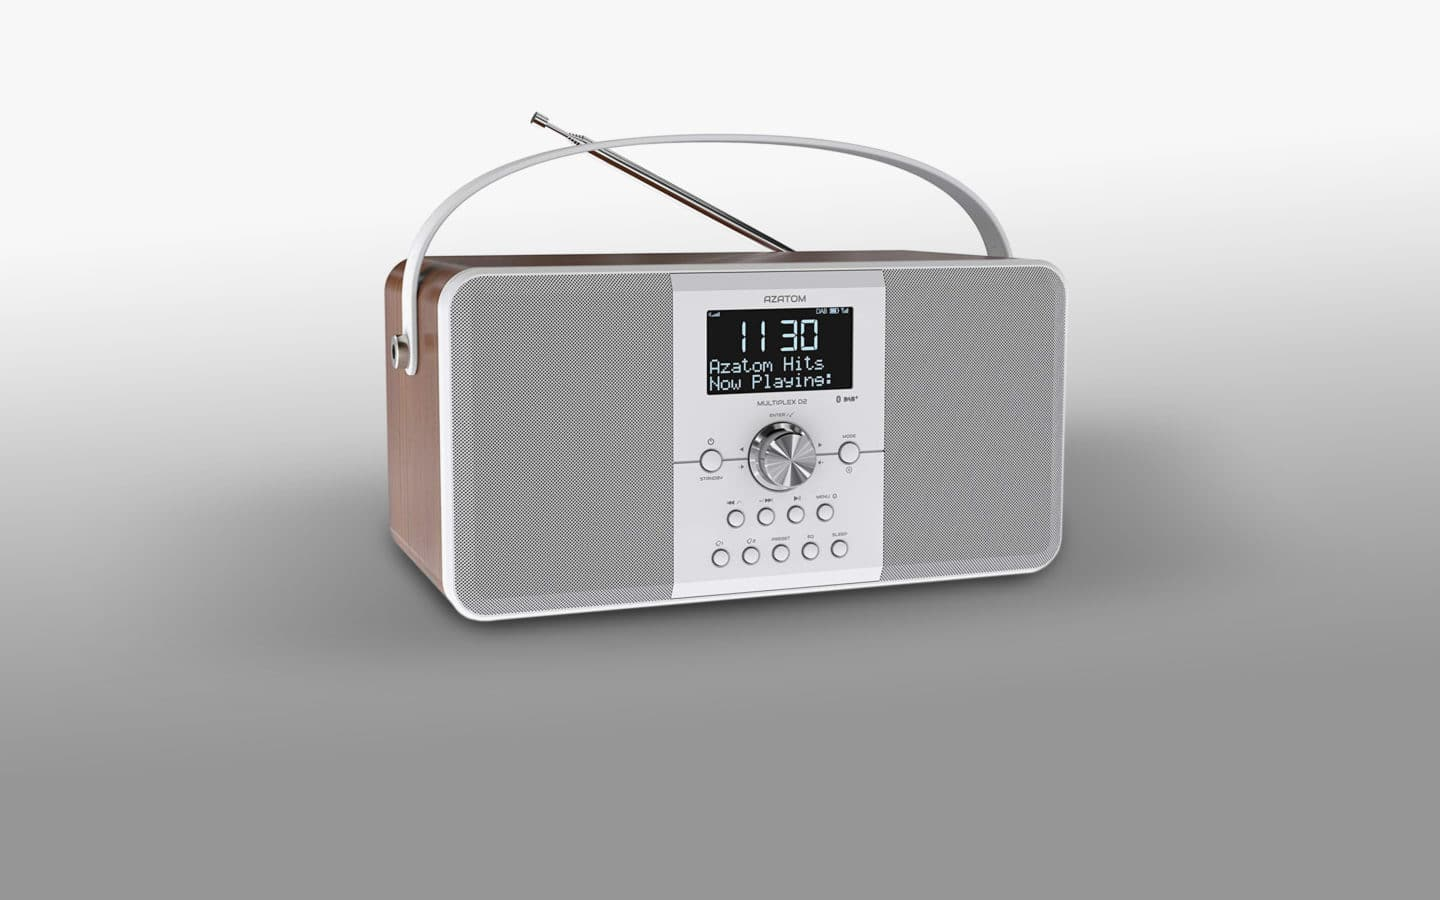 Radio With USB Port